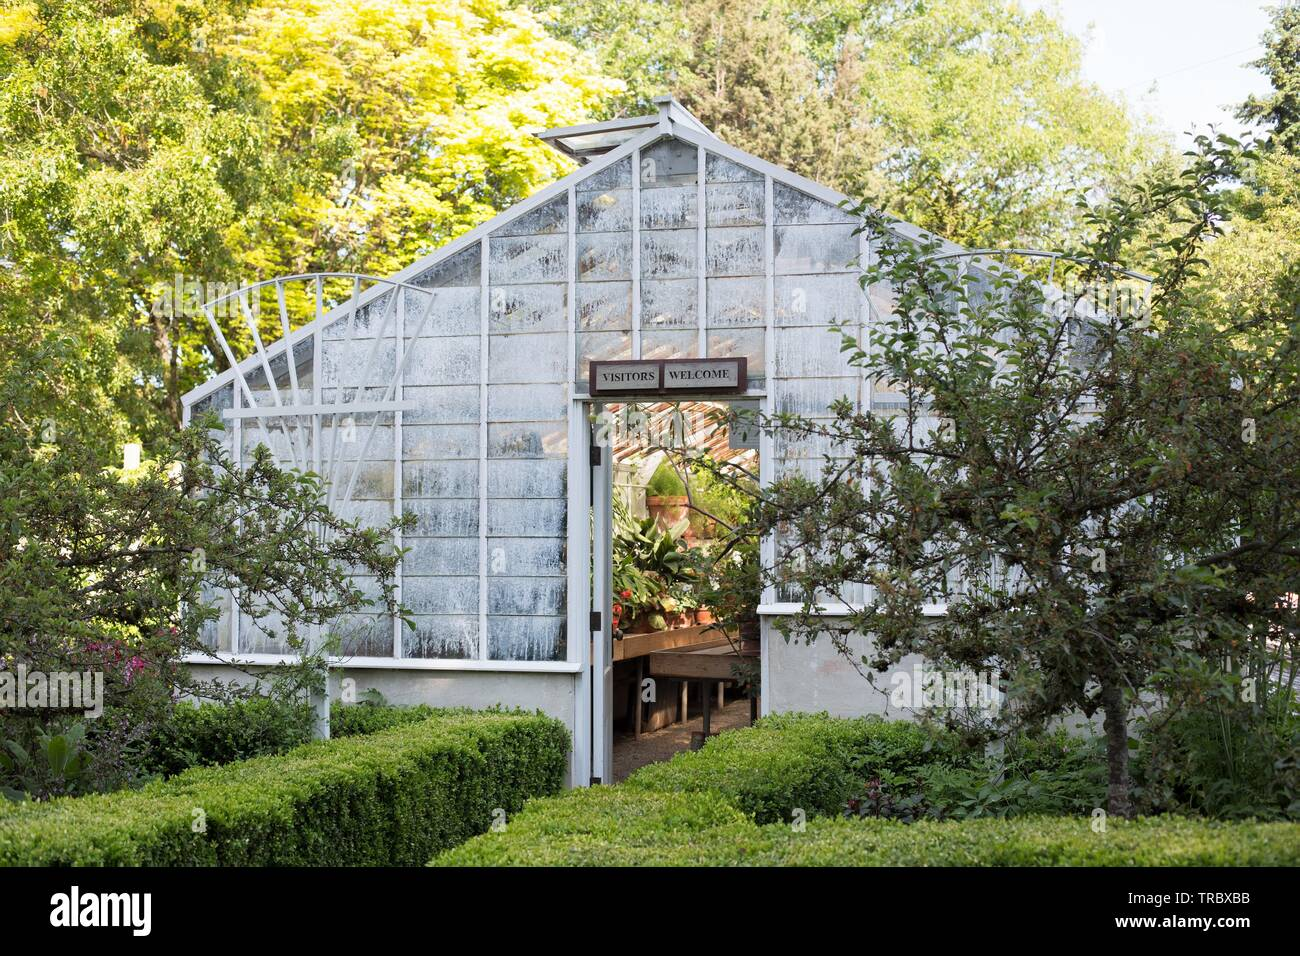 The greenhouse at Bush's Pasture Park in Salem, Oregon, USA. - Stock Image